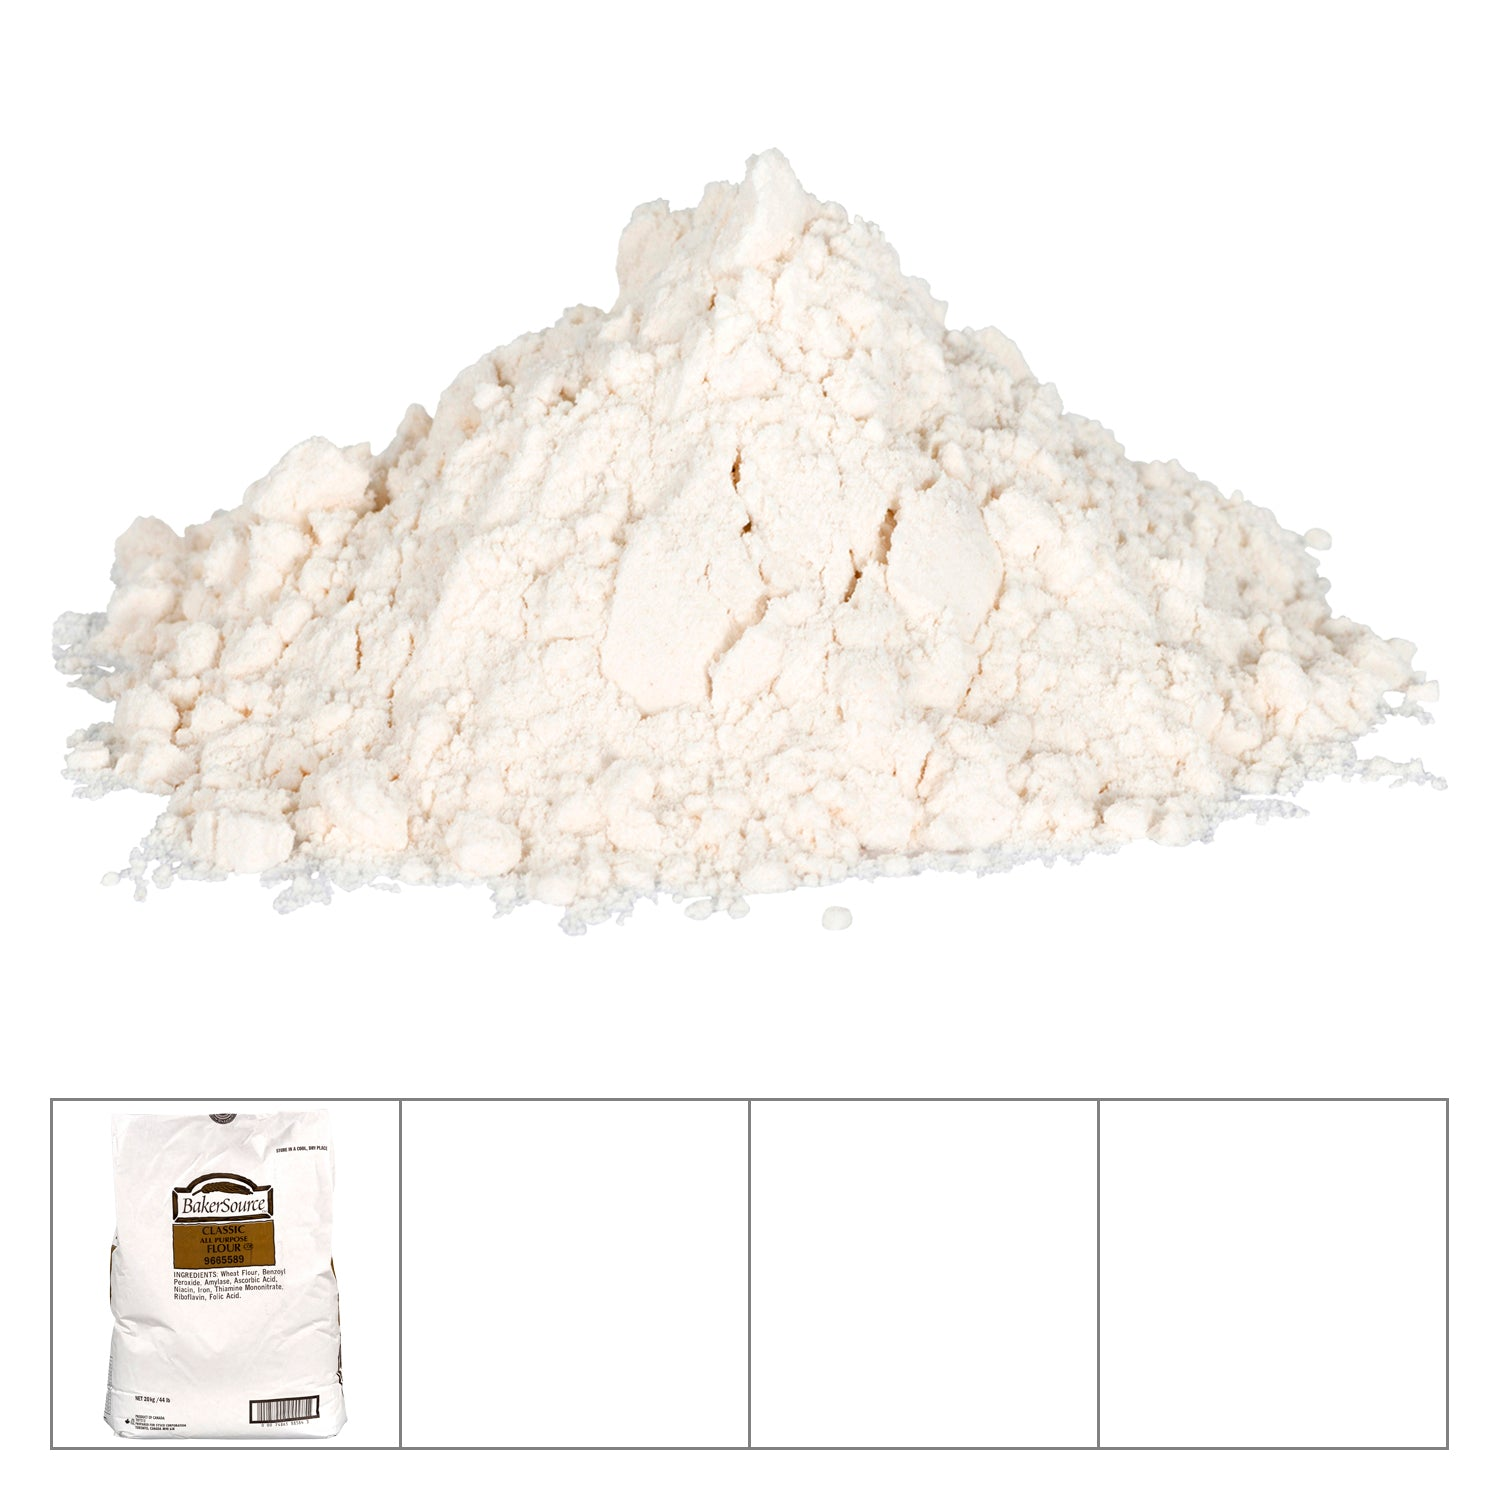 Sysco Baker's Source All Purpose Flour 20 kg - 1 Pack [$1.25/kg]